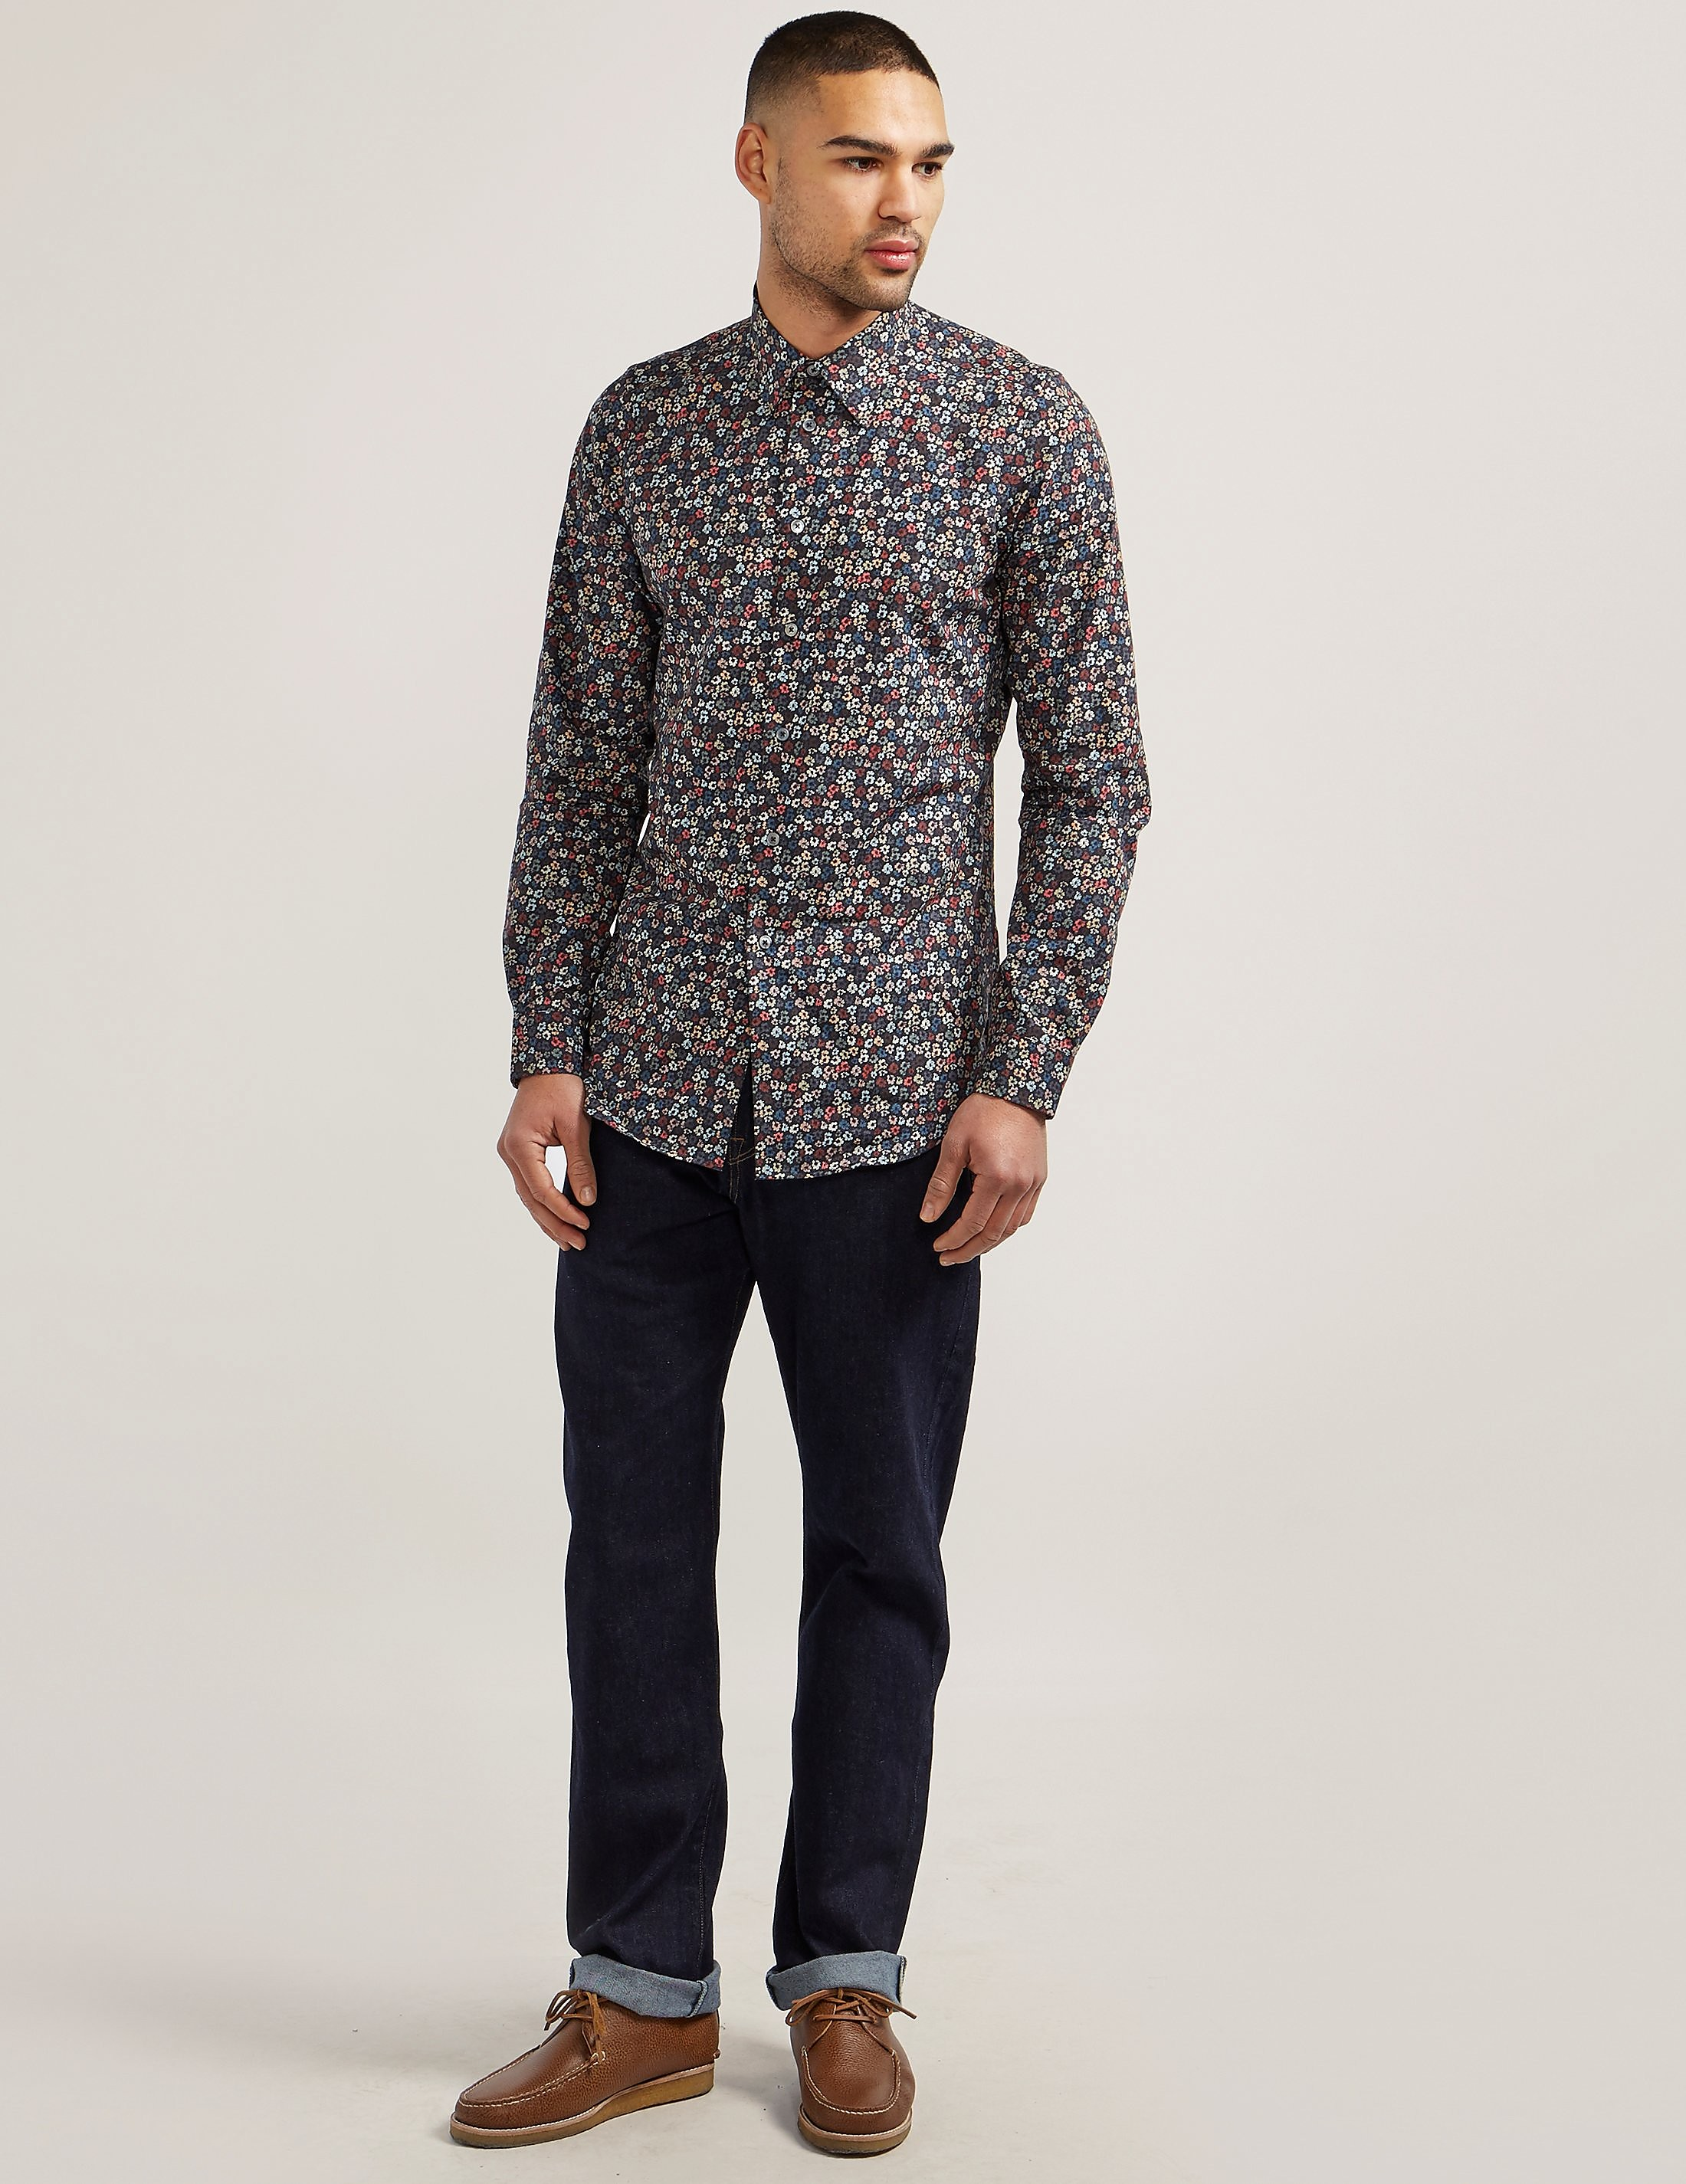 Paul Smith Floral Long Sleeve Shirt